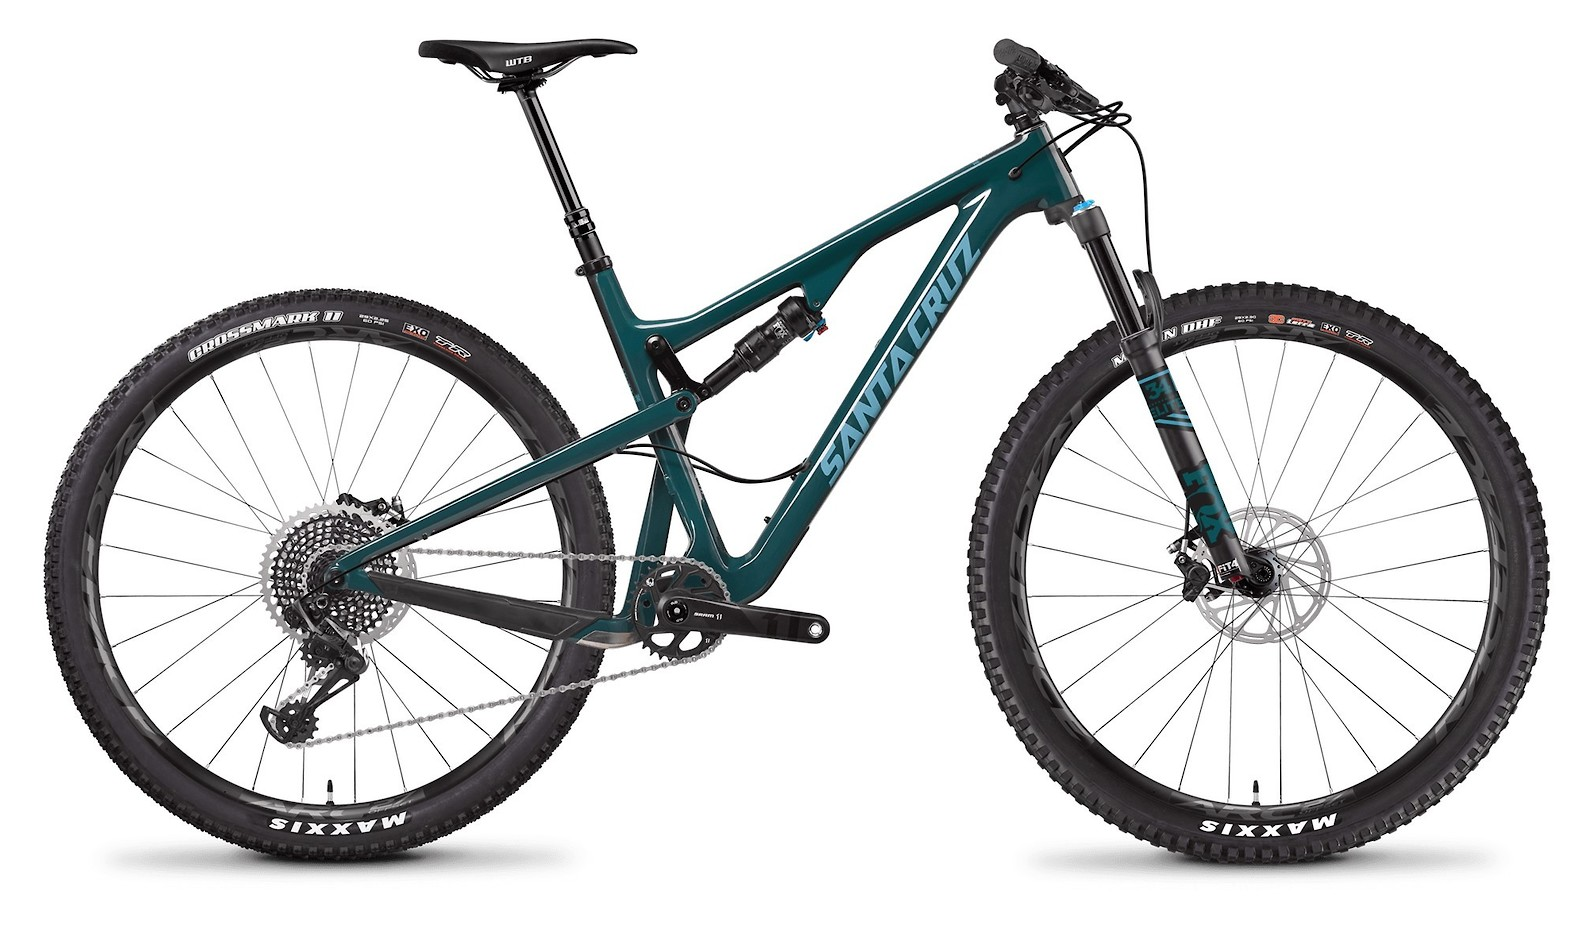 Tallboy Carbon CC X01 Forest Green and Baby Blue